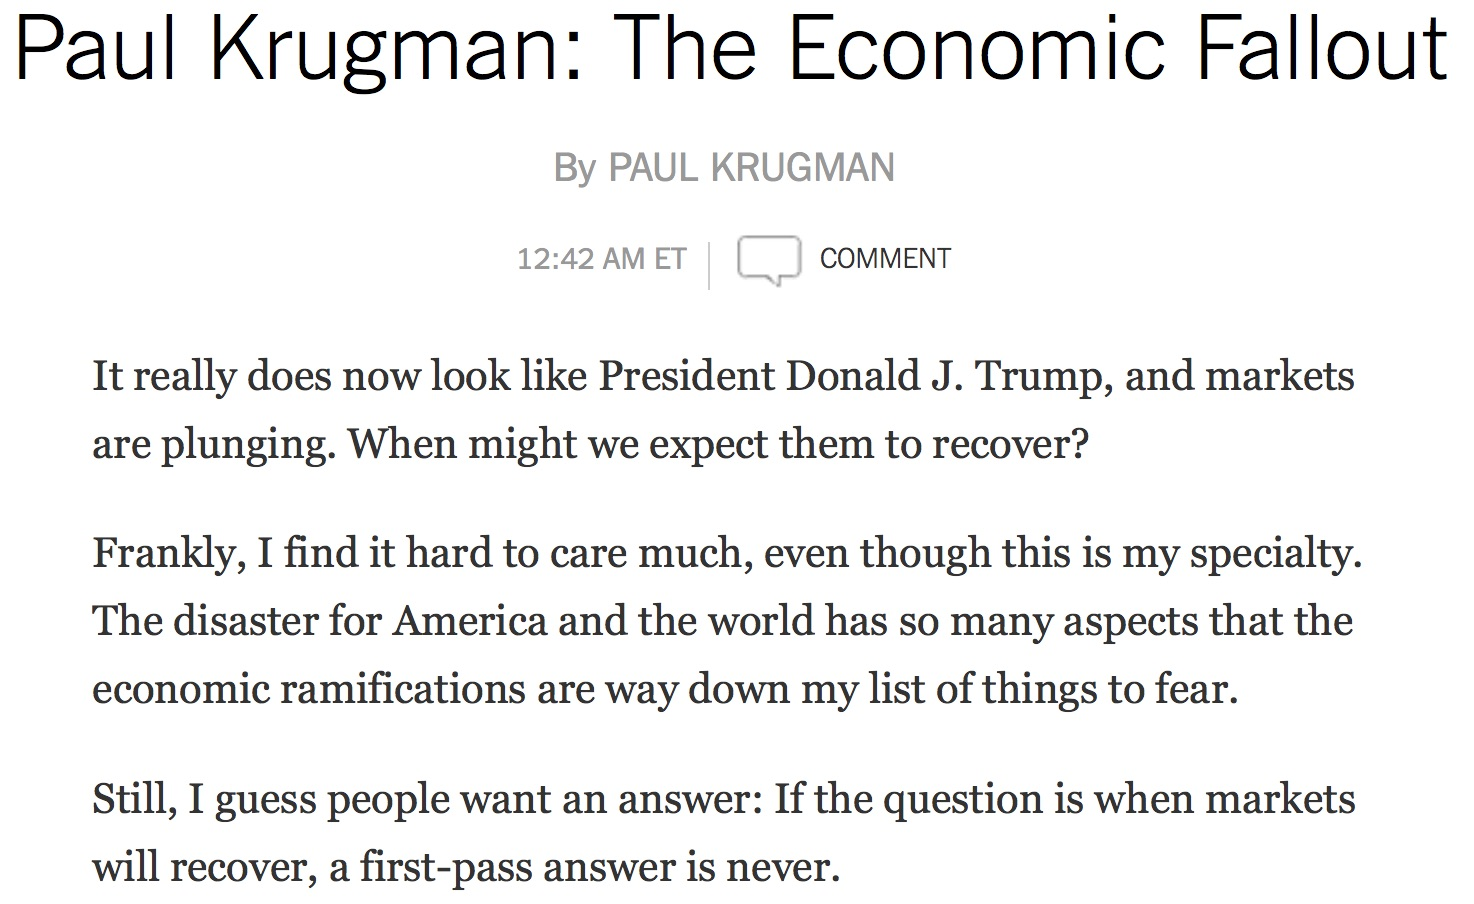 KrugmanMarketsWillNeverRecover110916